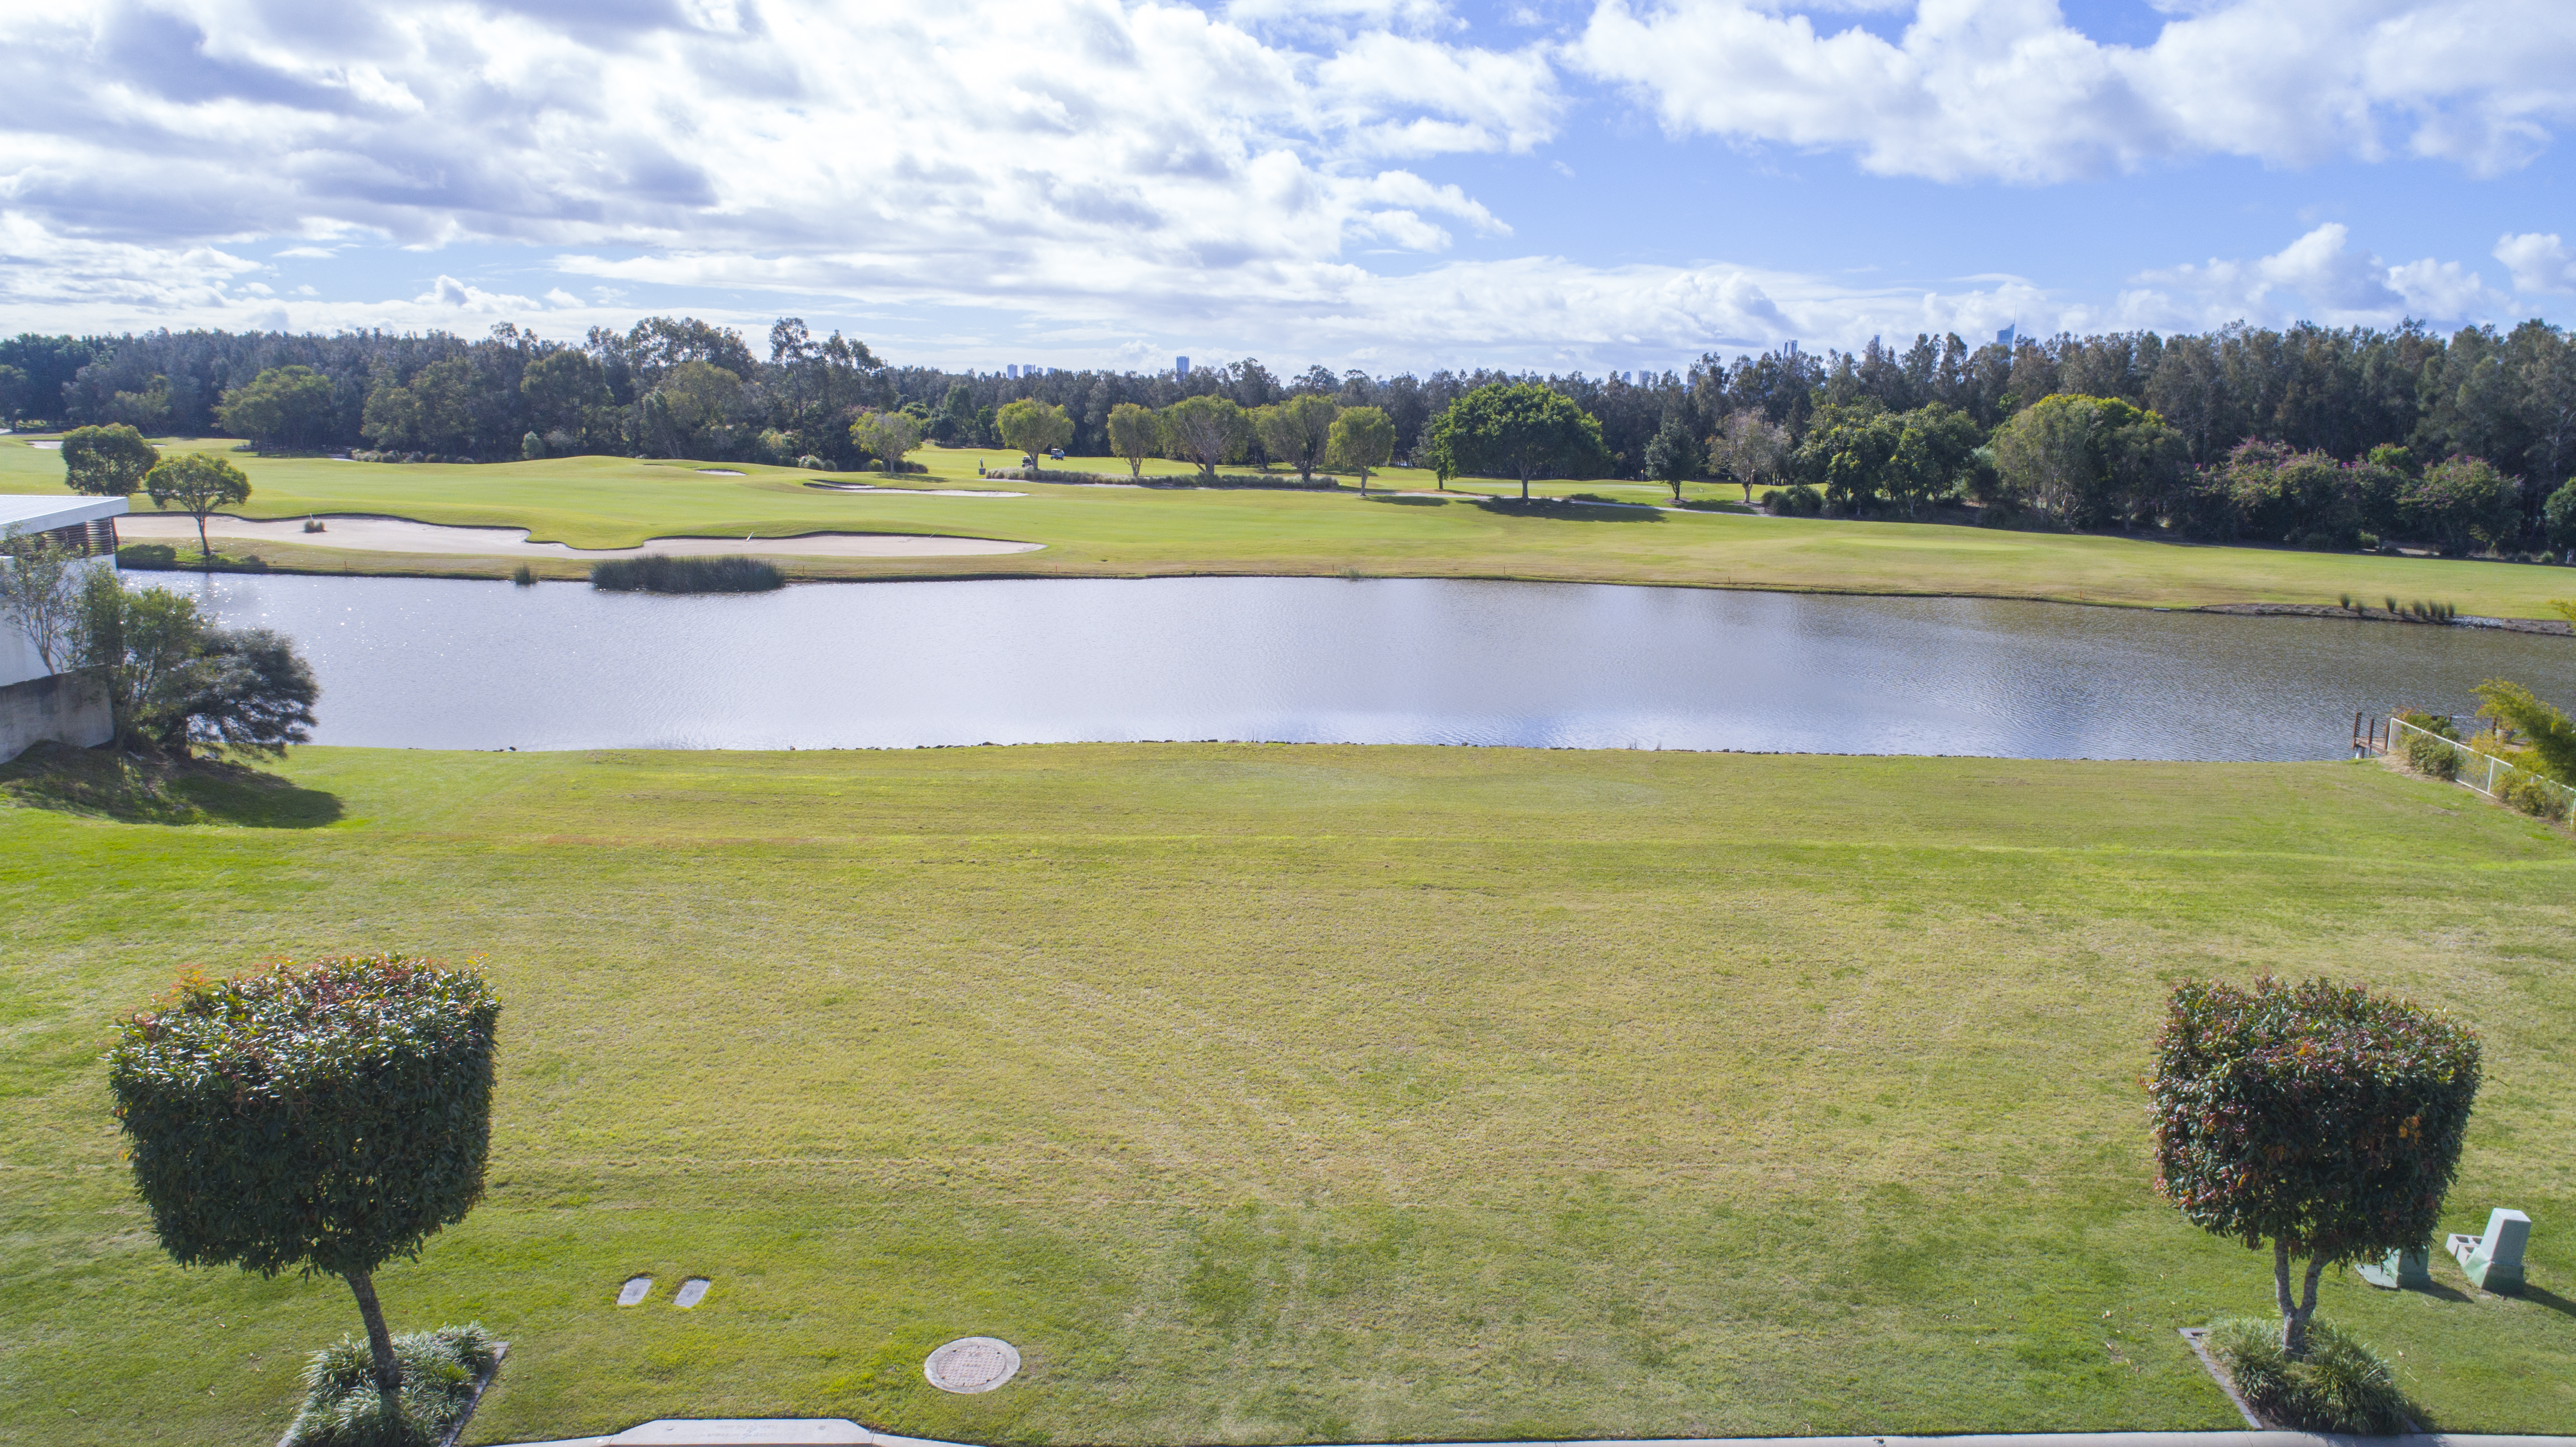 STUNNING WATERFRONT LAND WITH UNINTERRUPTED GOLF COURSE VIEWS